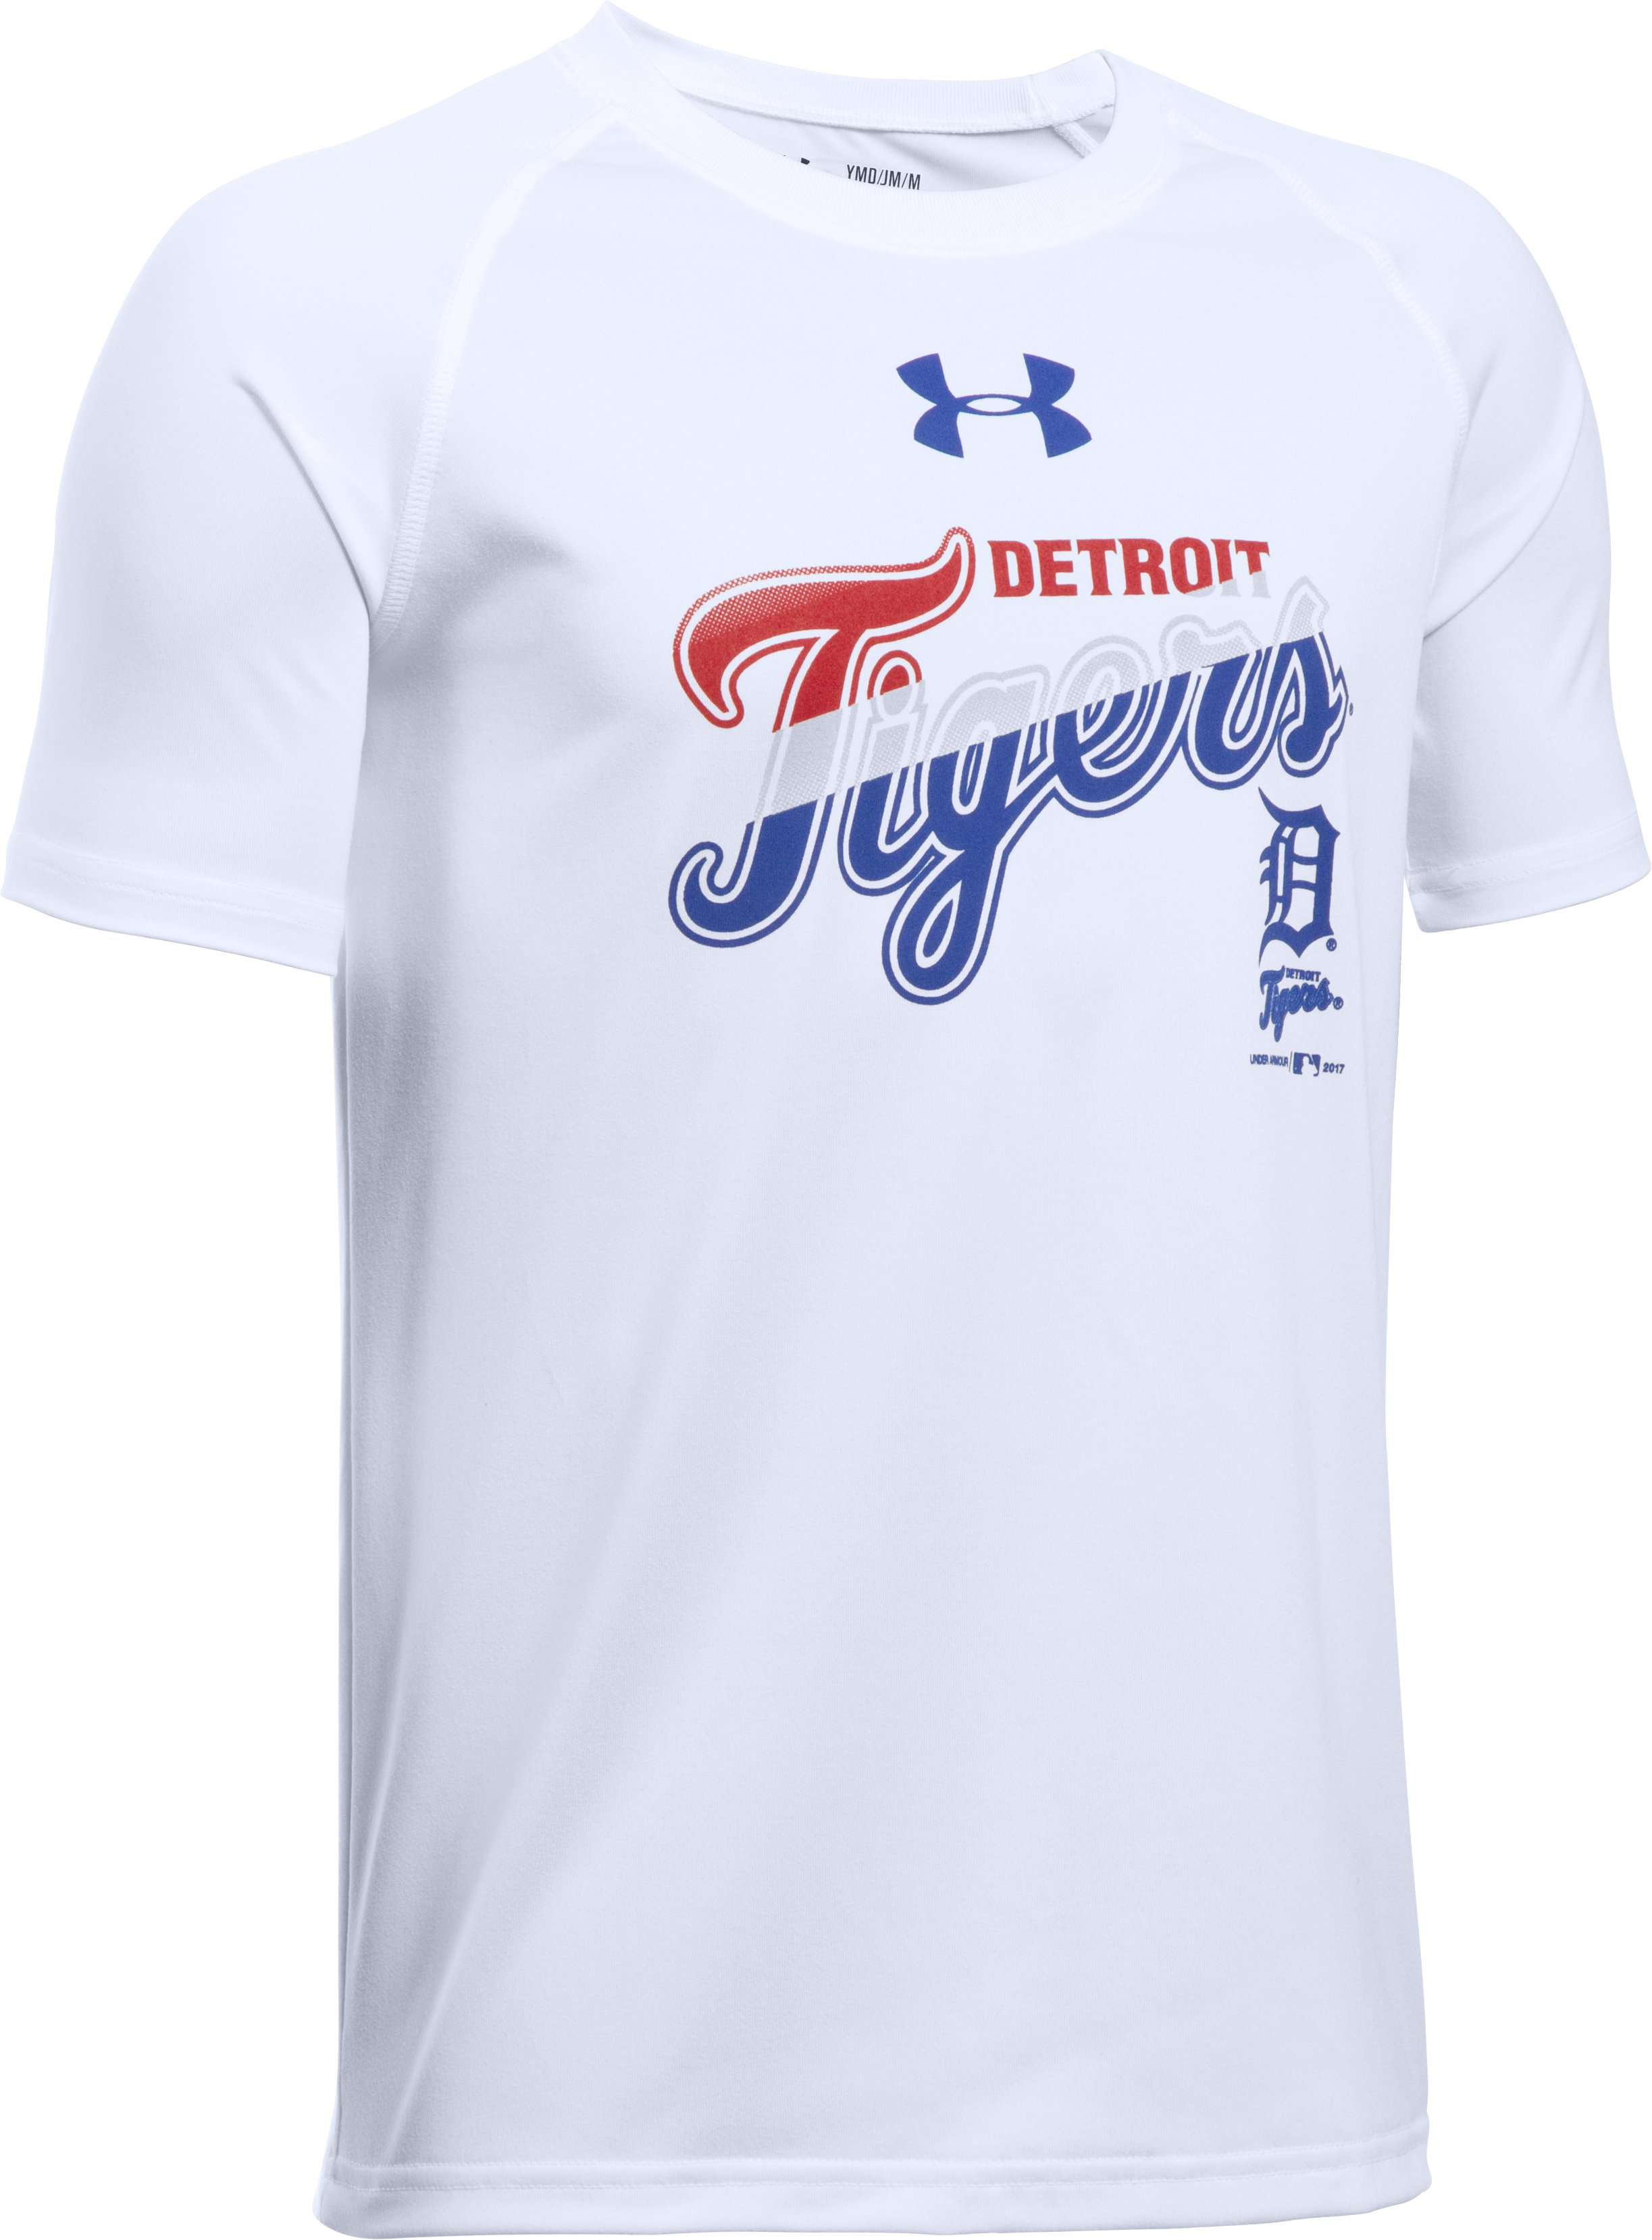 Boys' Detroit Tigers T-Shirt, White, undefined